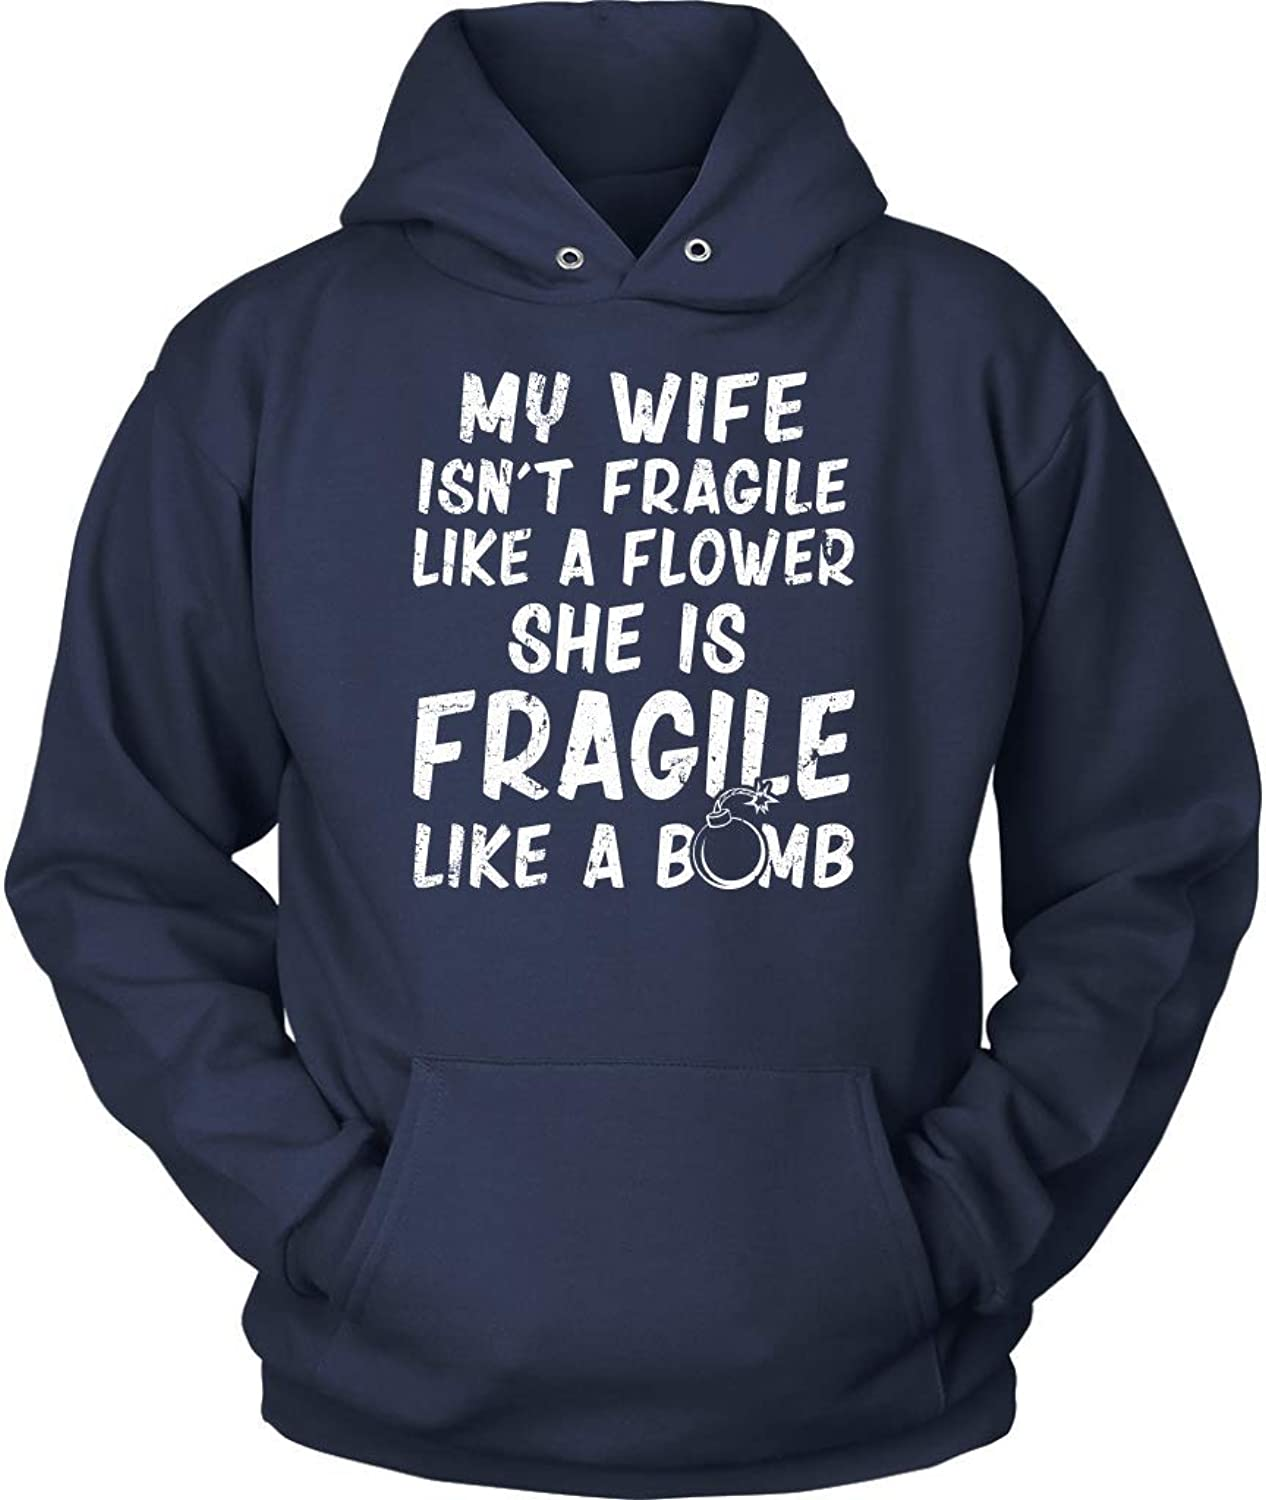 My Wife Isn't Fragile Like A Flower She is Fragile Like A Bomb Awesome Tshirt  Perfect Valentine or Shirts Youth Hoodie